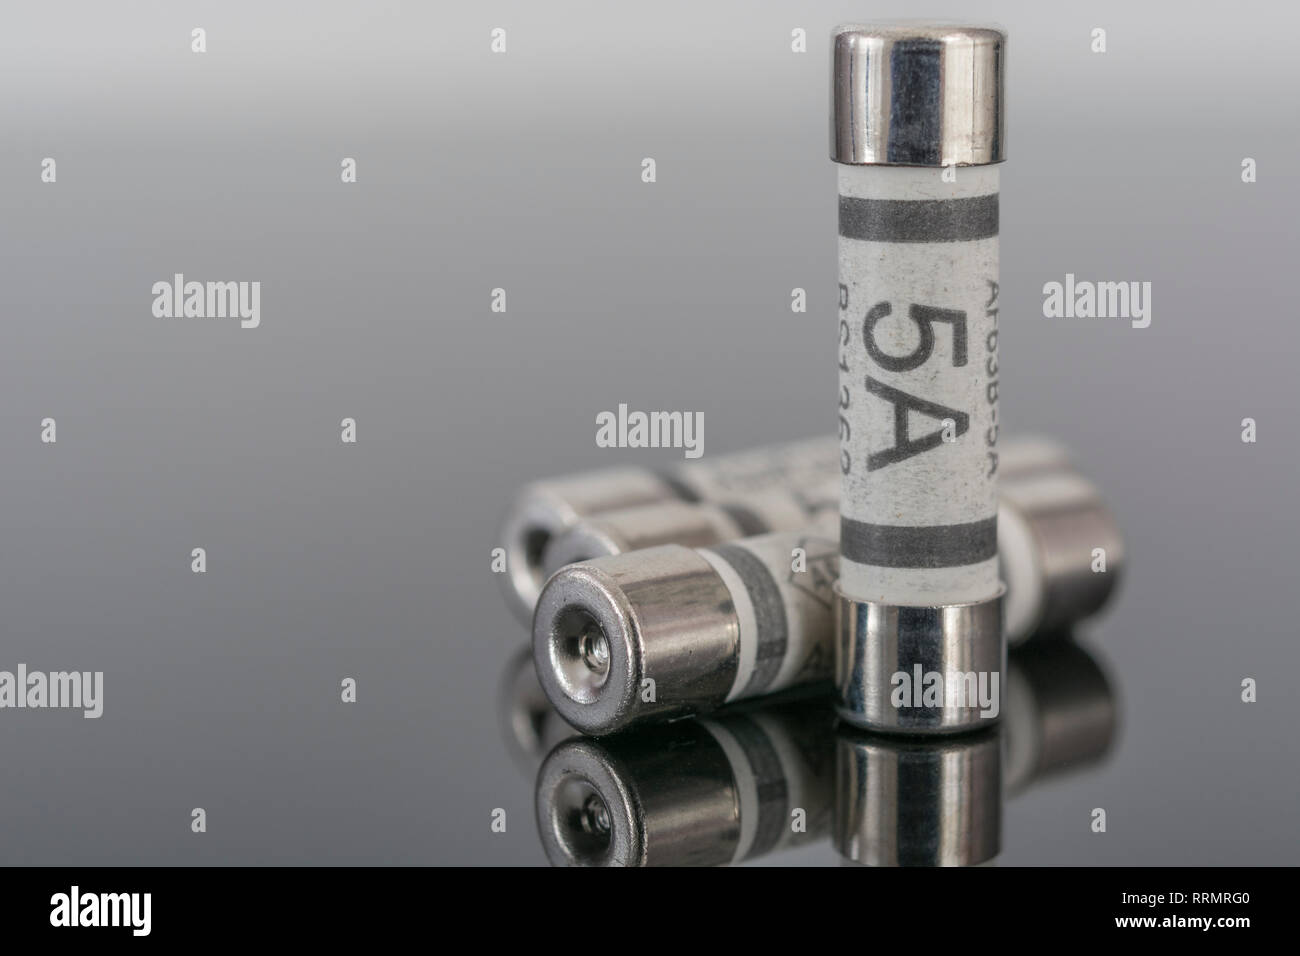 5 Amp household ceramic cartridge fuses. Stock Photo